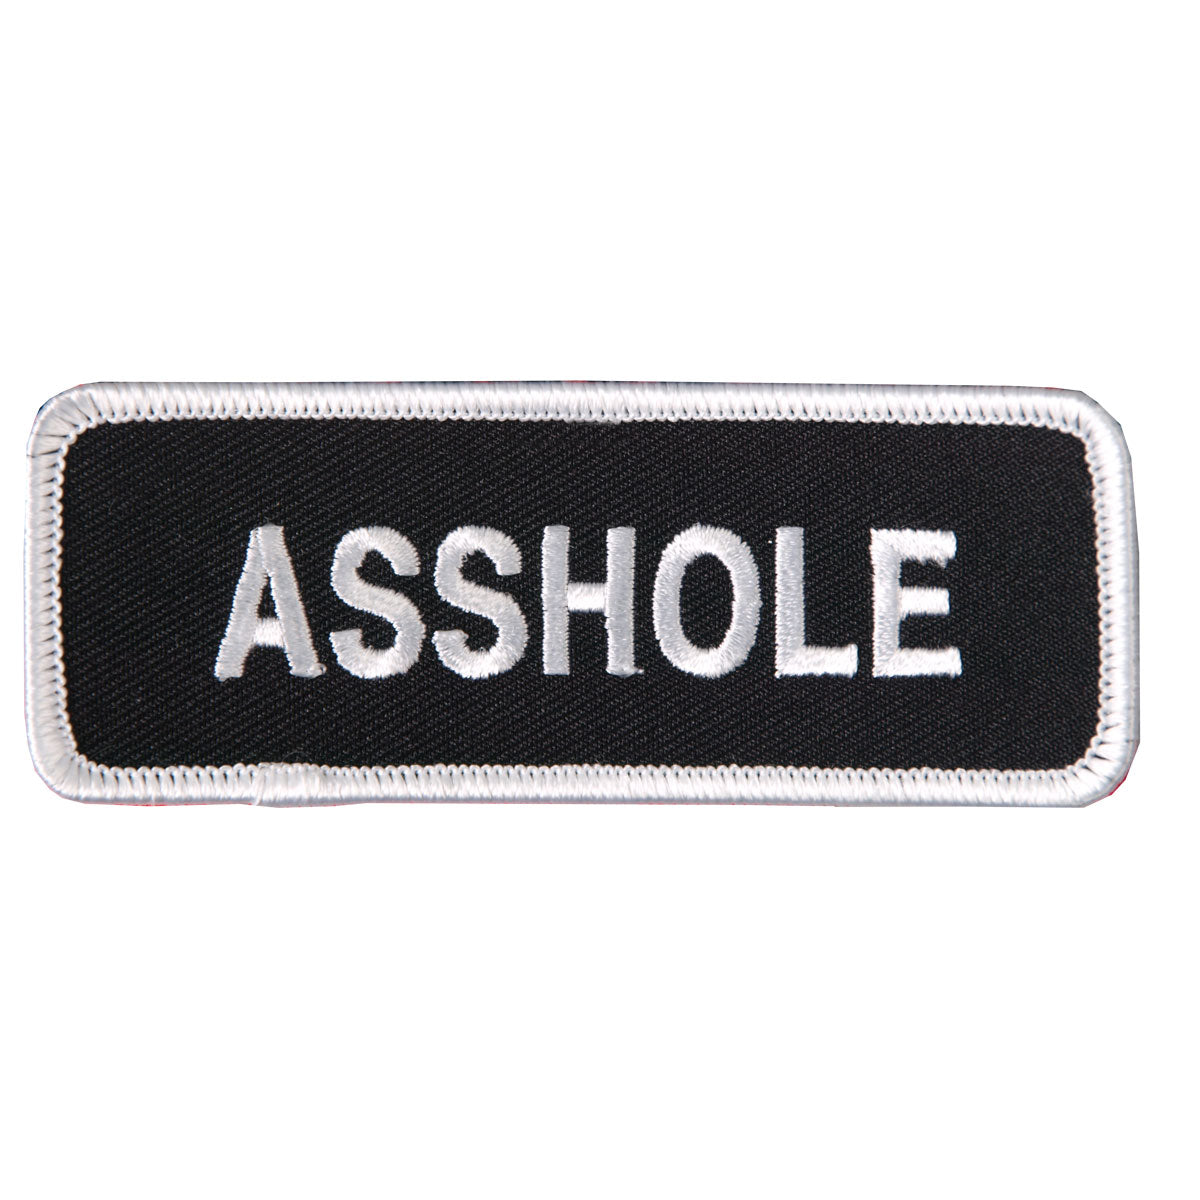 "Hot Leathers Asshole 4"" x 2"" Patch"